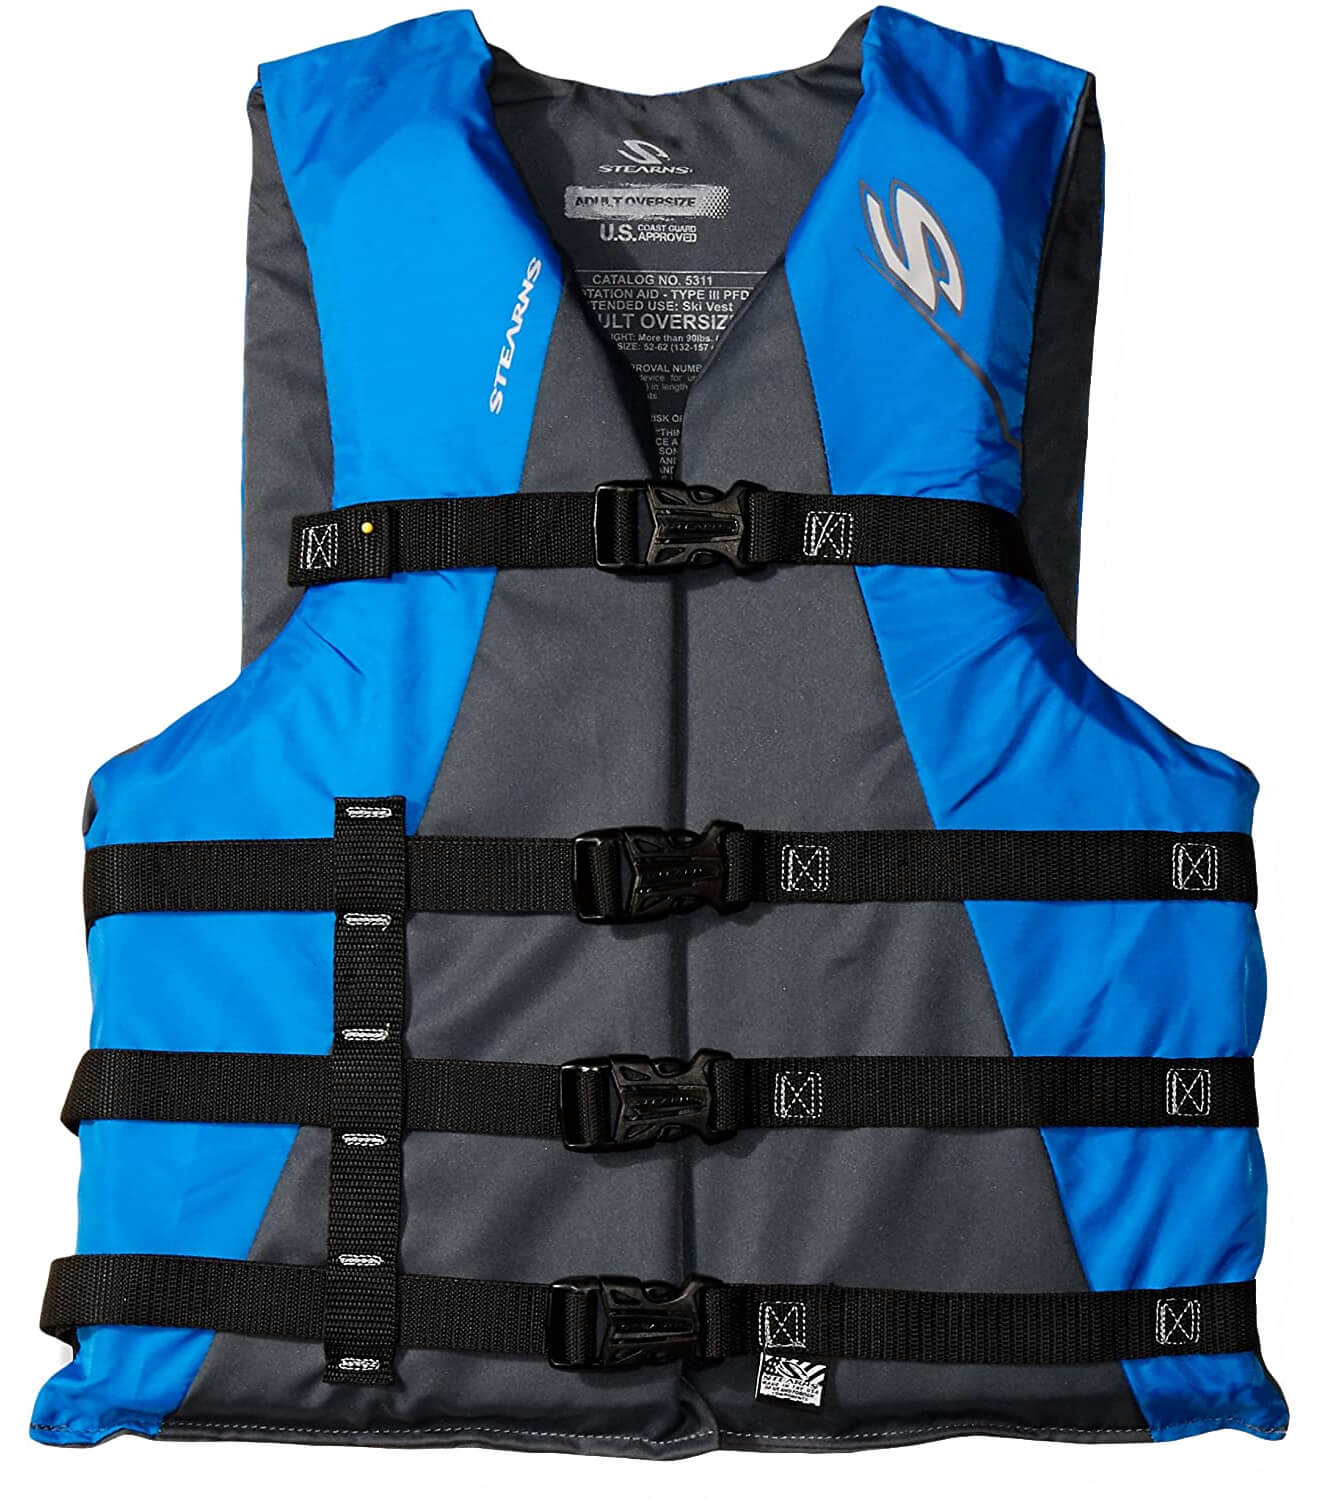 Stearns Adult Watersport Classic Life Vest